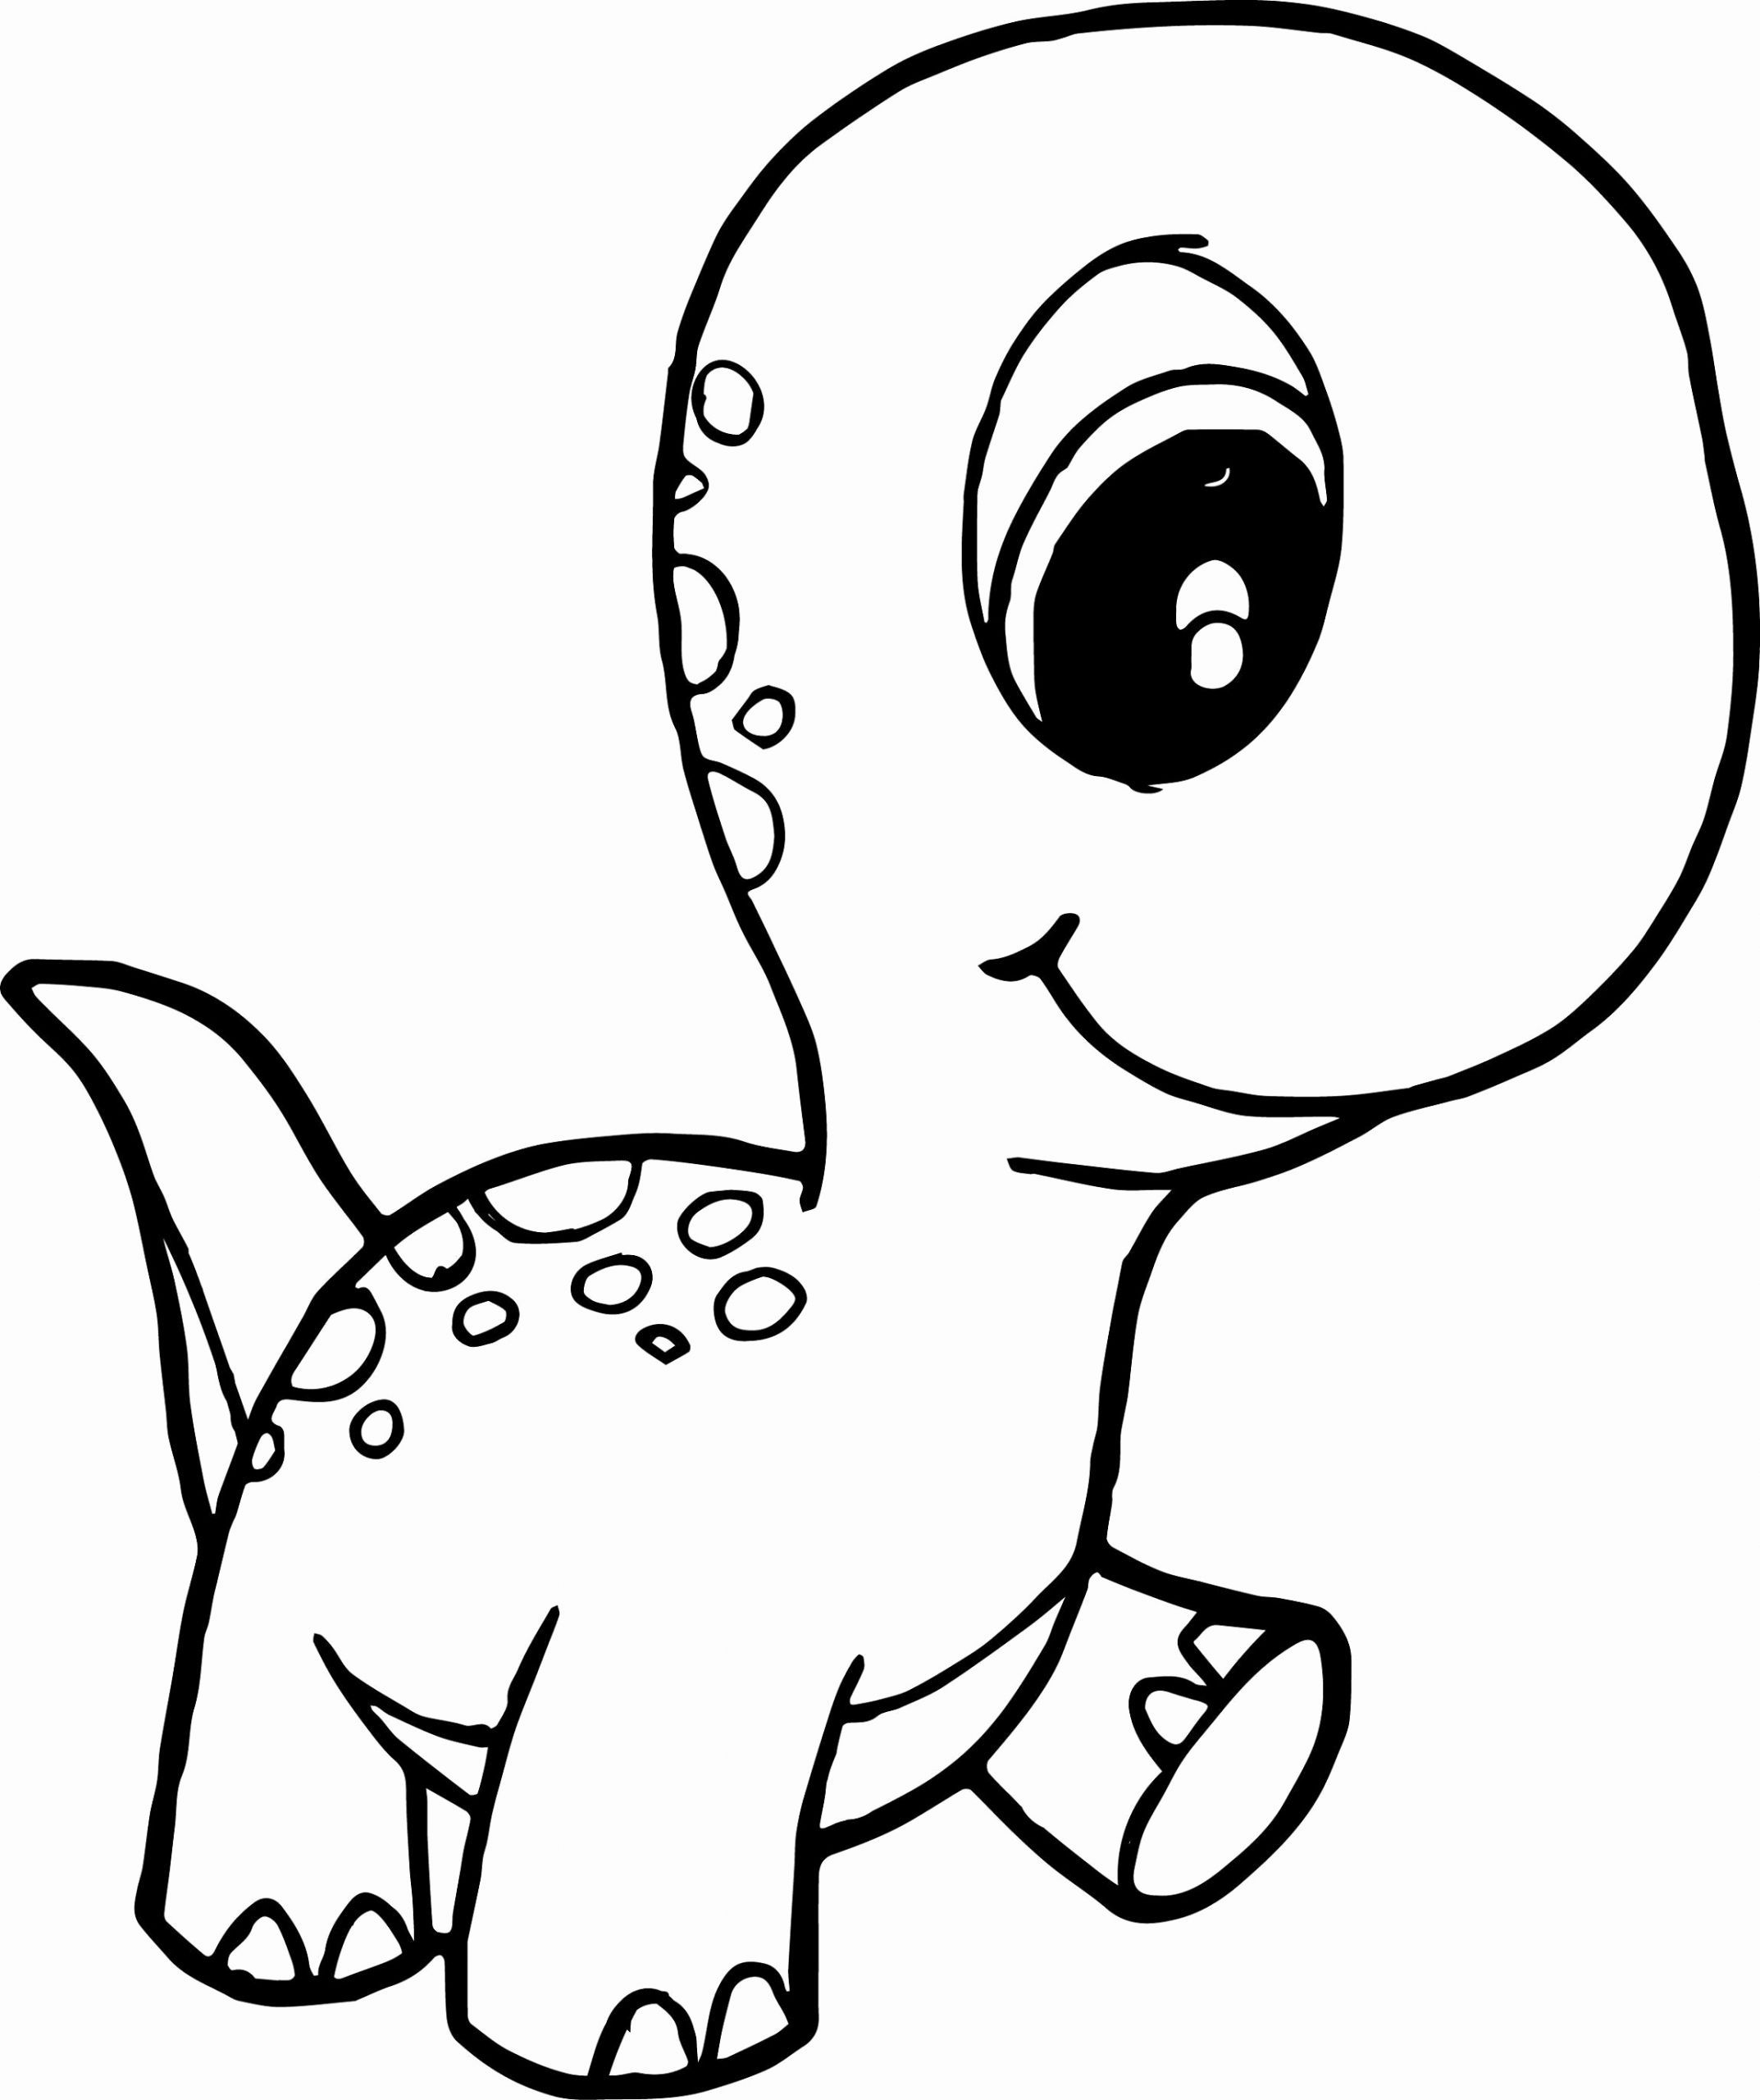 Cute Baby Animal Coloring Pictures Fresh Baby Dinosaur Coloring Pages For Preschoolers Cute Coloring Pages Dinosaur Coloring Dinosaur Coloring Pages